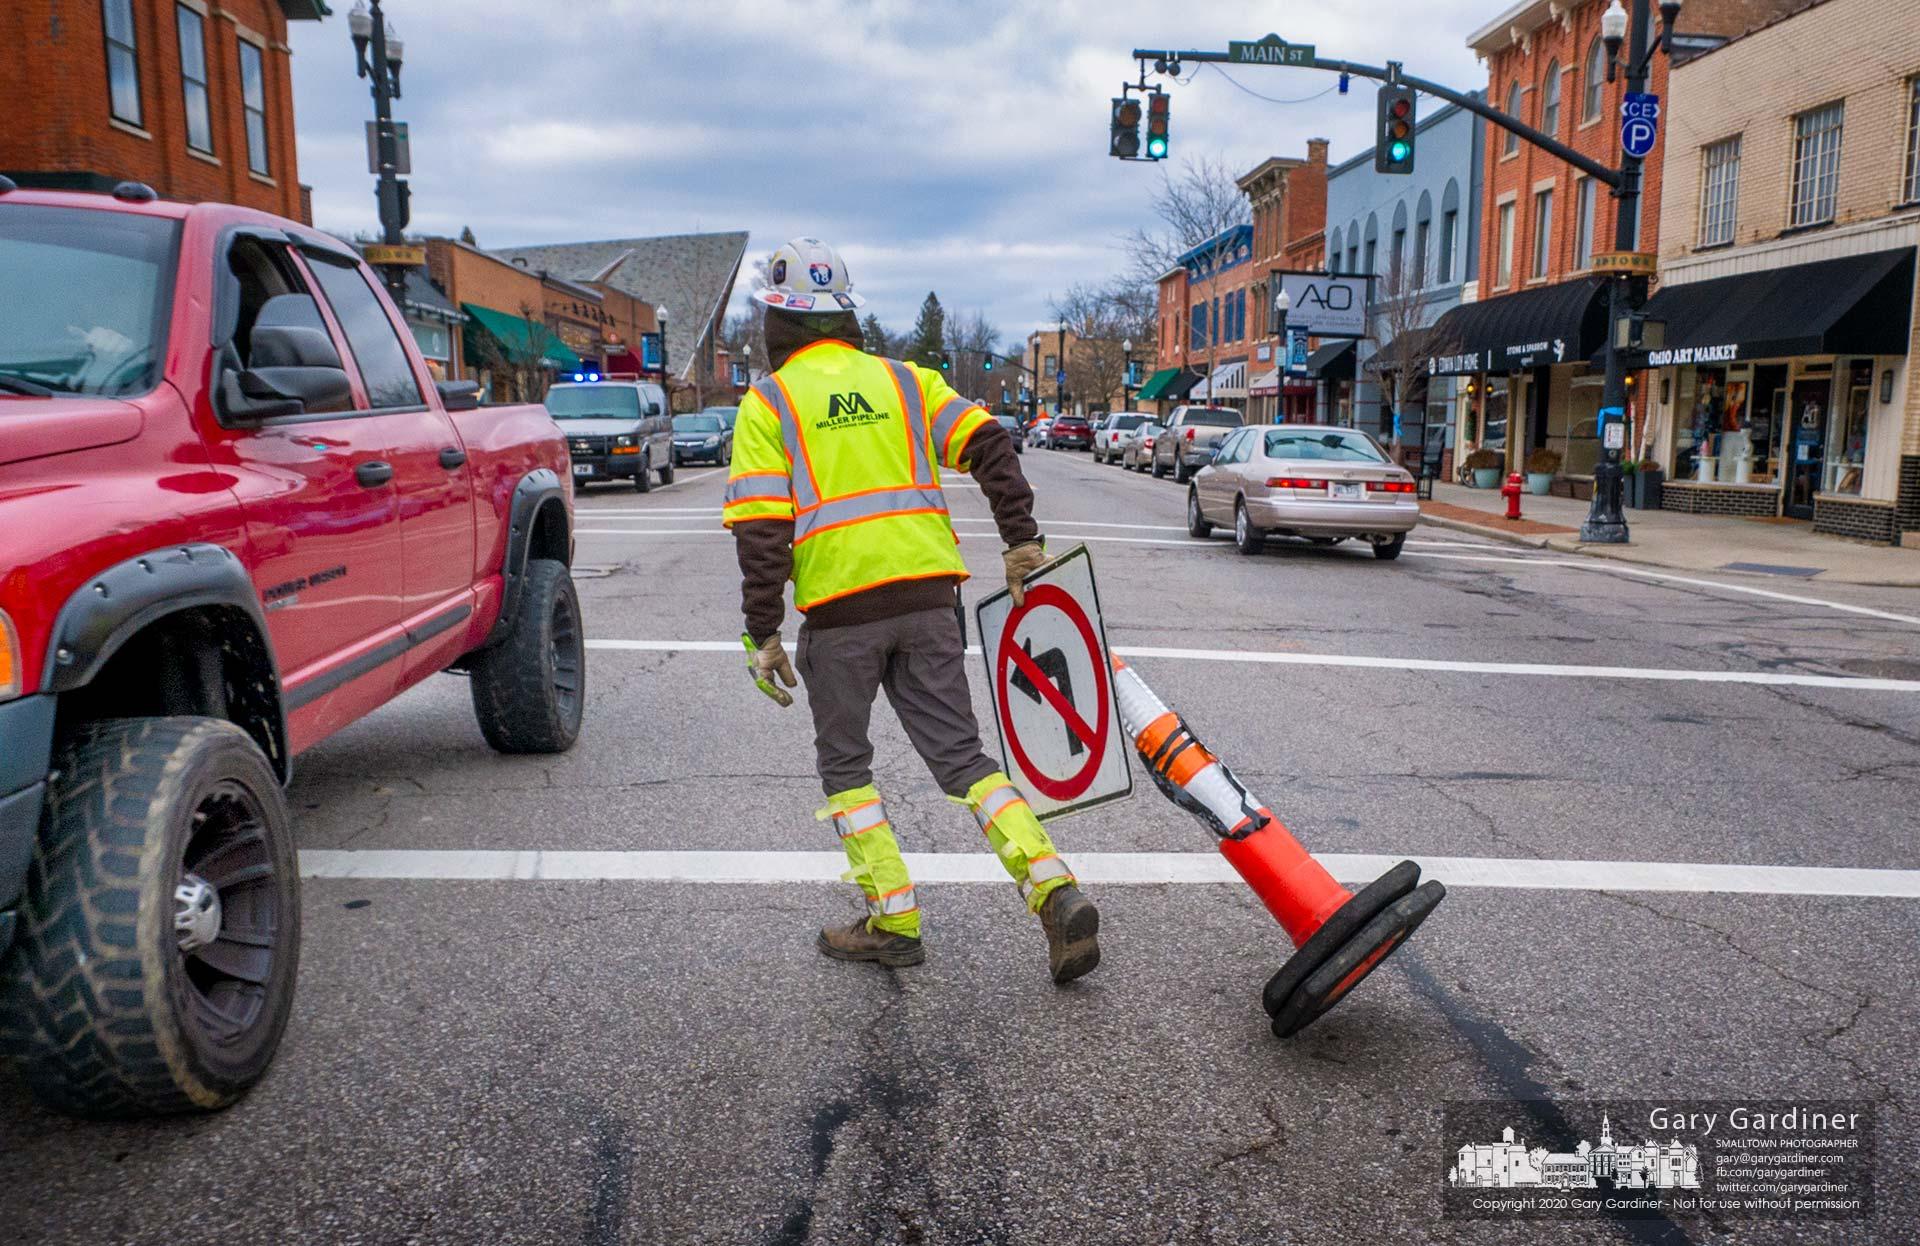 A Miller Pipeline worker removes the No Left Turn sign from State Street after the crew completed connecting new gas lines to the Holmes Hotel building. My Final Photo for Jan. 13, 2020.